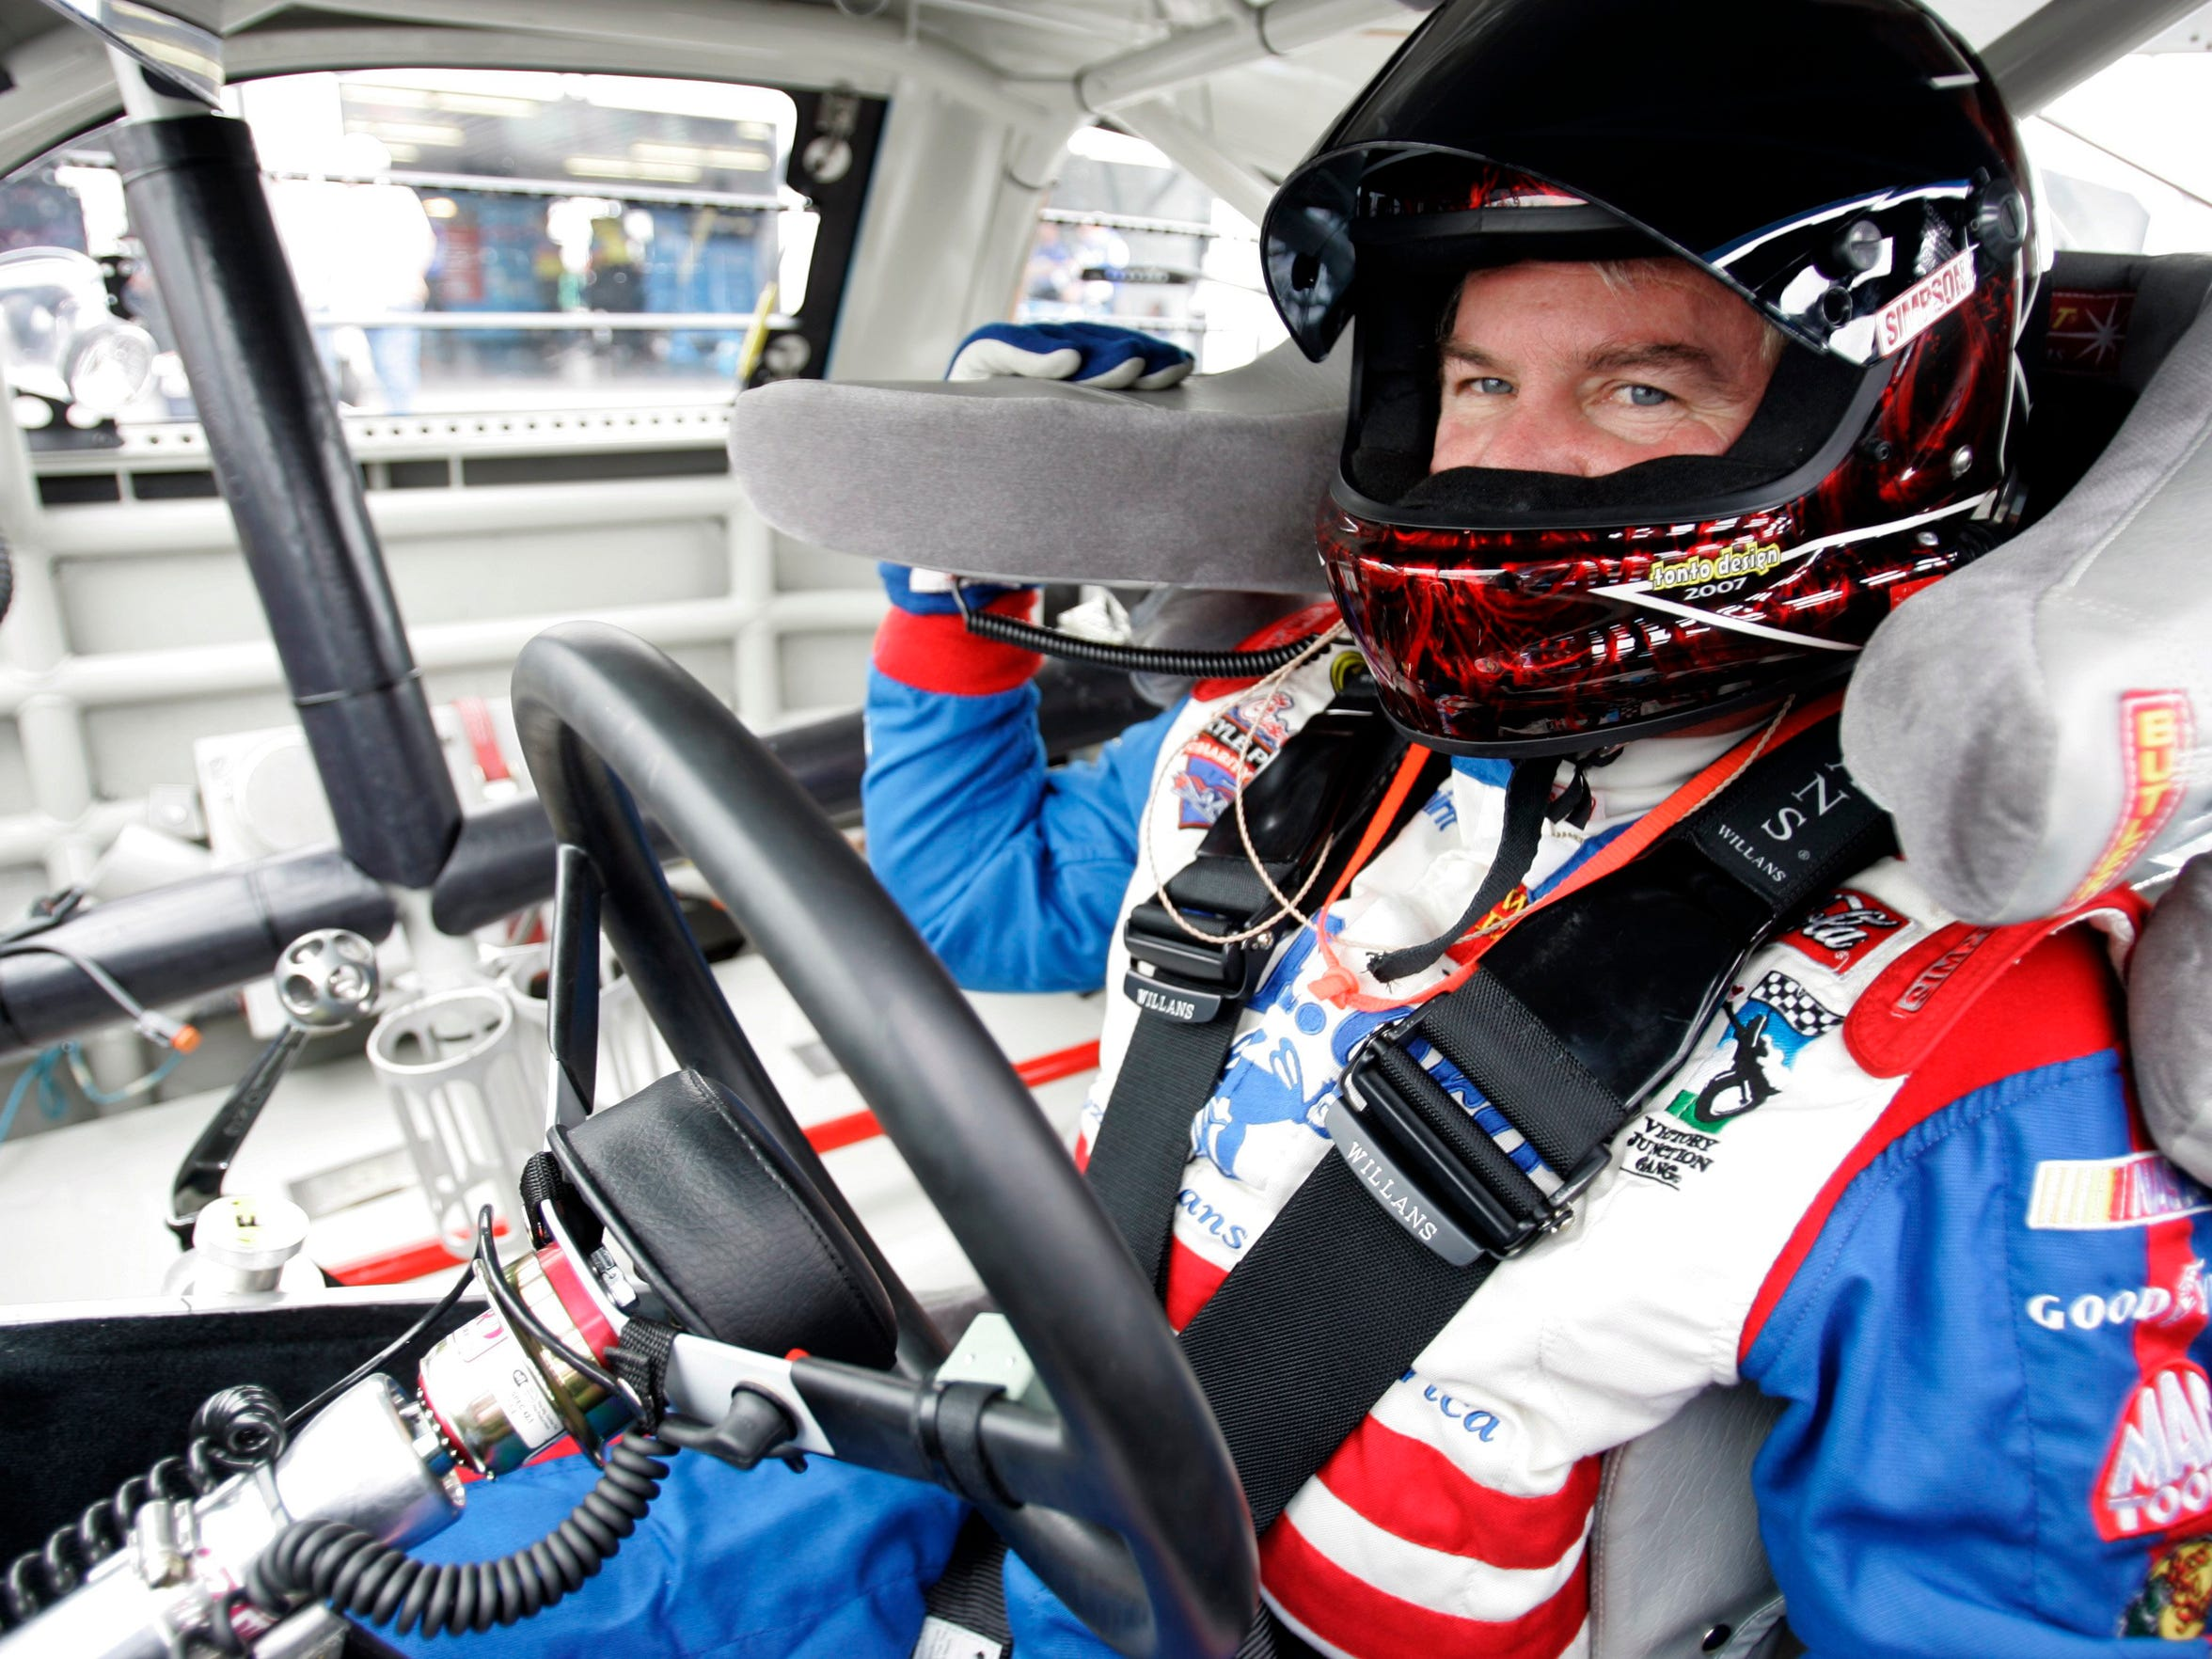 NASCAR driver Terry Labonte waits in his car to go out onto the track during practice for the NASCAR Sprint Cup Series Pocono 500 auto race in Long Pond, Pa., Friday, June 6, 2008. (AP Photo/Carolyn Kaster)